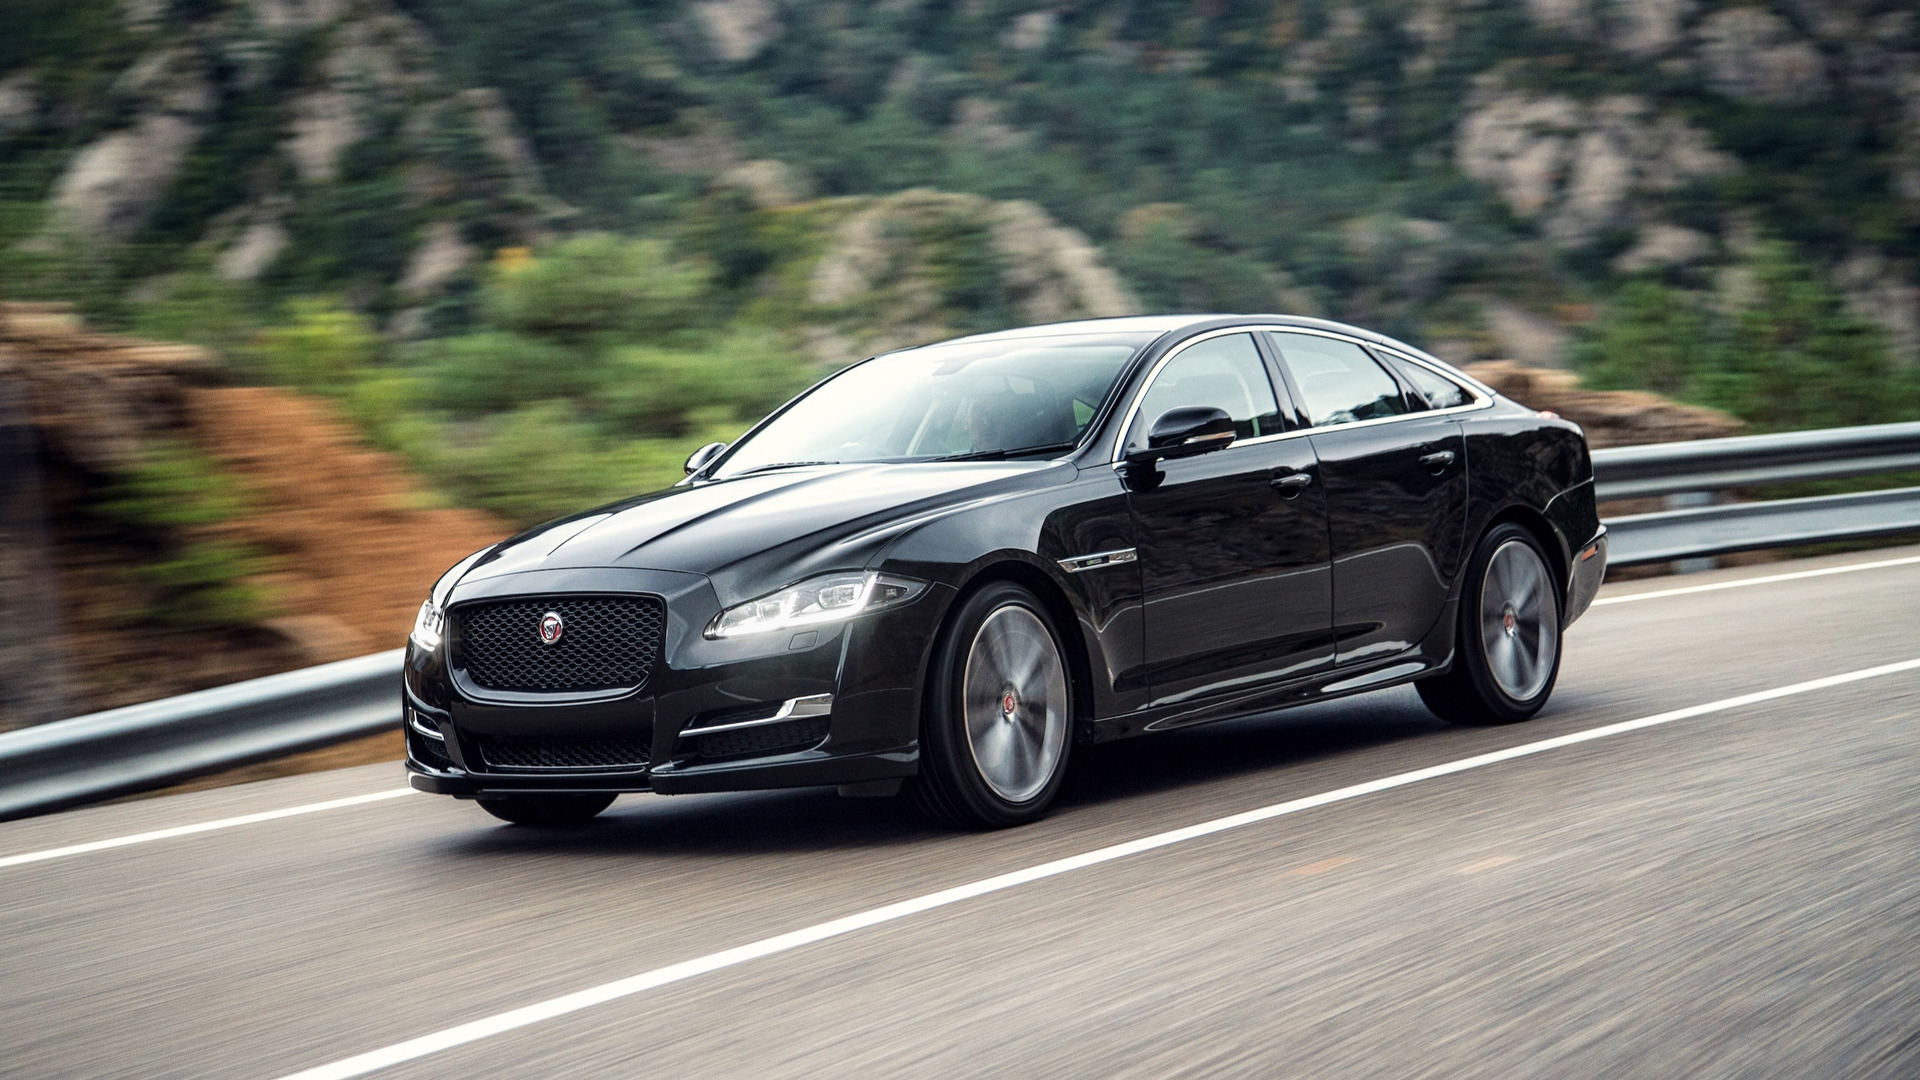 Jaguar Design Boss Talks Next Gen Xj Electric F Type Replacement